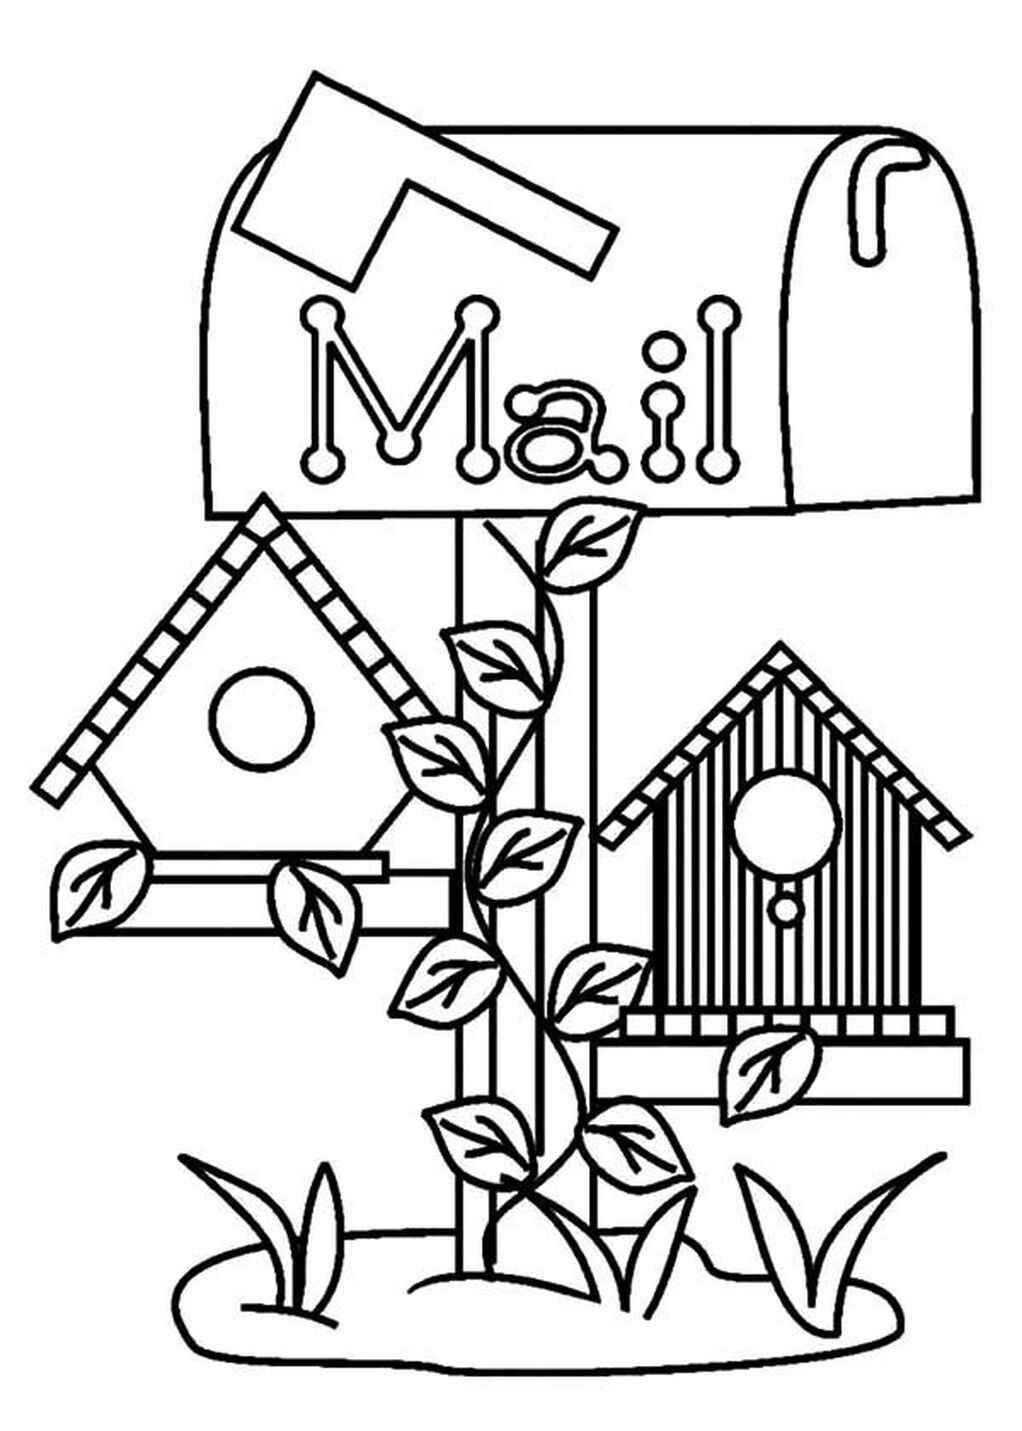 Birdhouse Under Mail Box Coloring Sheet